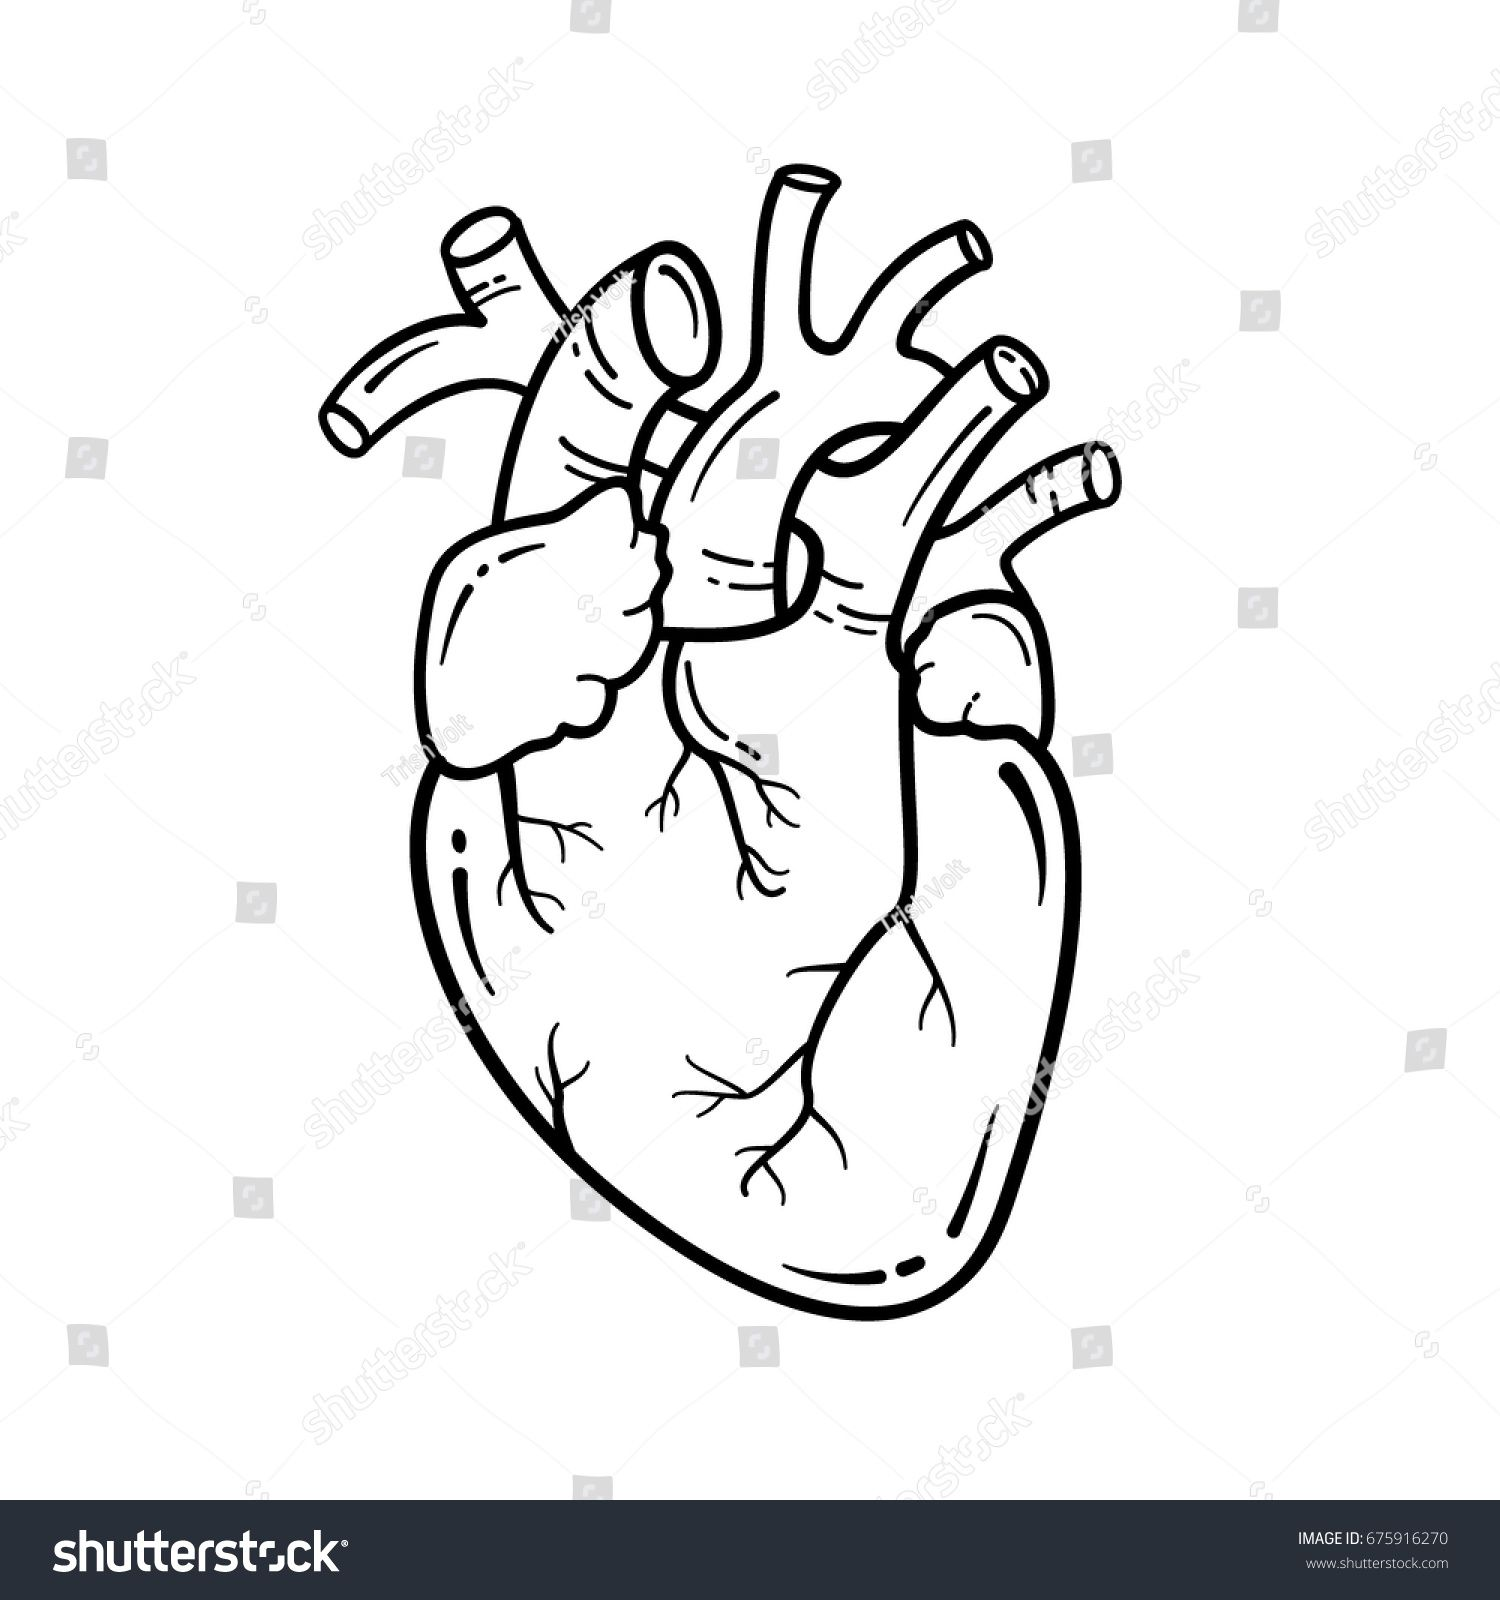 Anatomical heart line art illustration. Vector simple